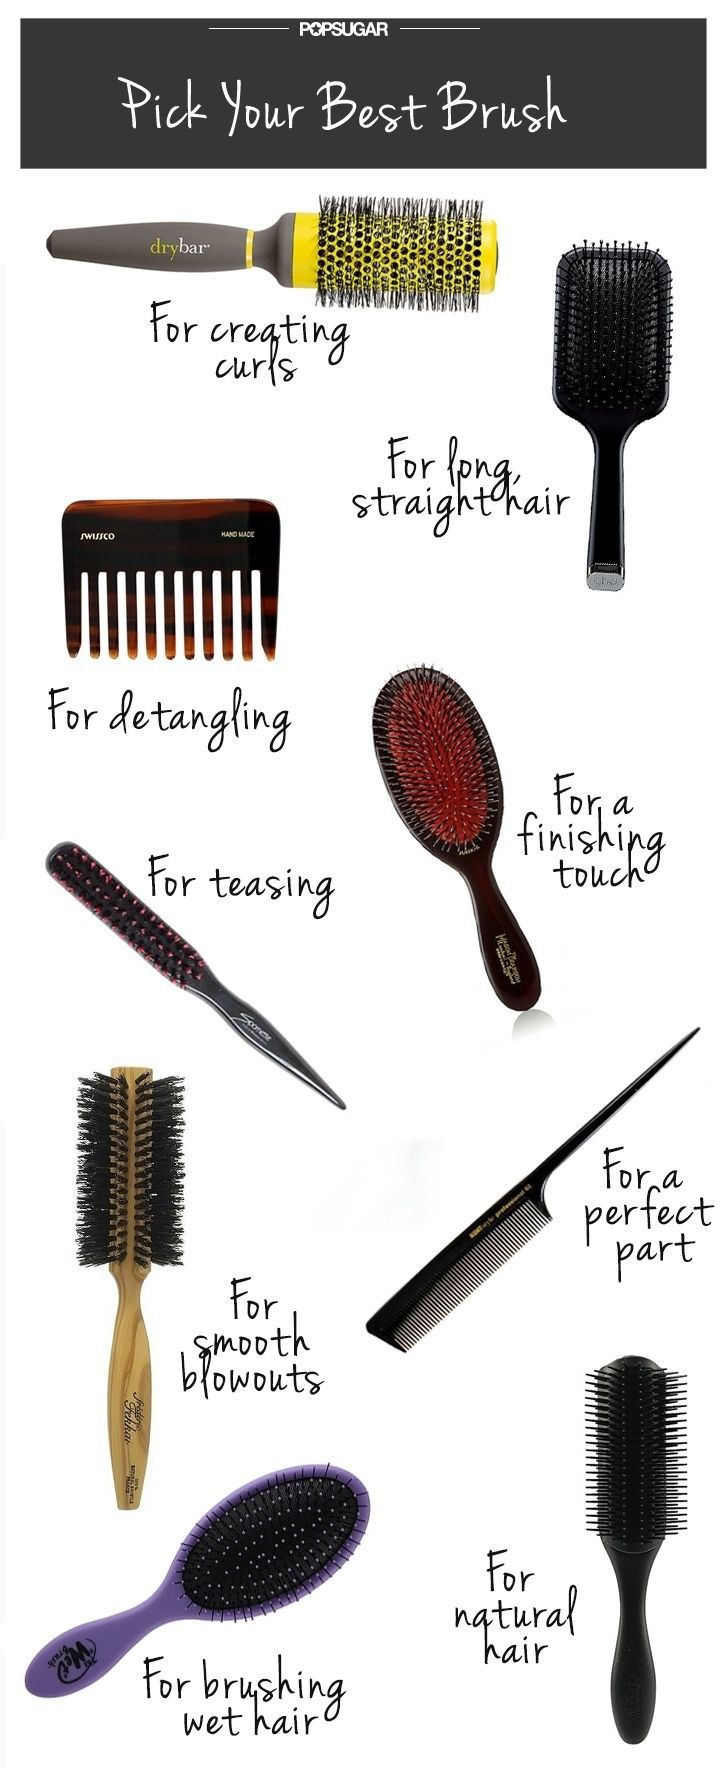 Make Sure You Re Buying The Right Brushes For Your Hair Type And Desired Style Hair Beauty Hair Styles Beauty